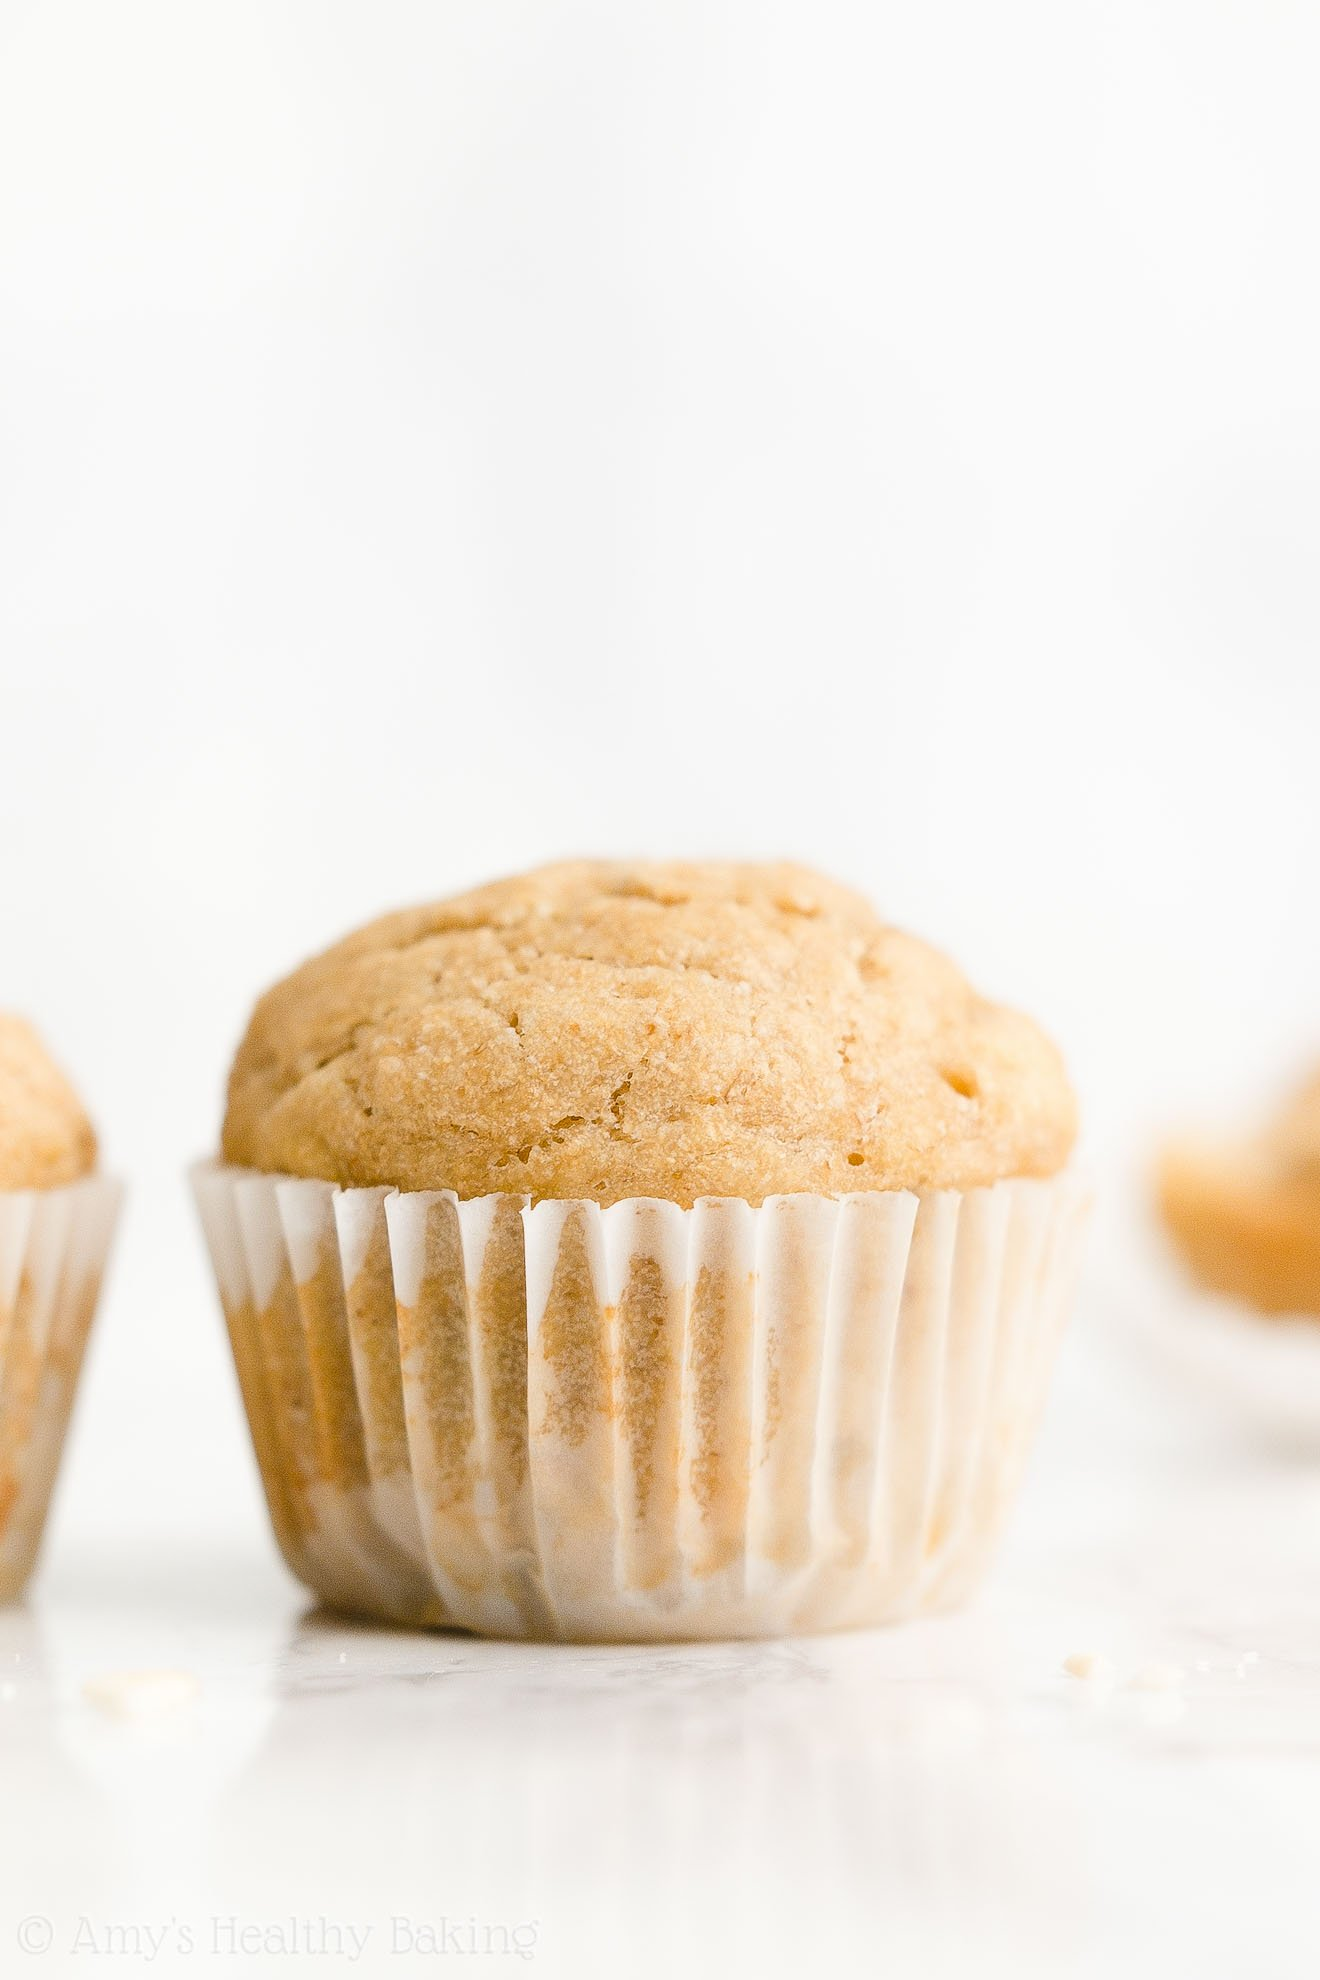 Best Easy Healthy Whole Wheat Vegan Sugar Free Moist Banana Muffins No Eggs